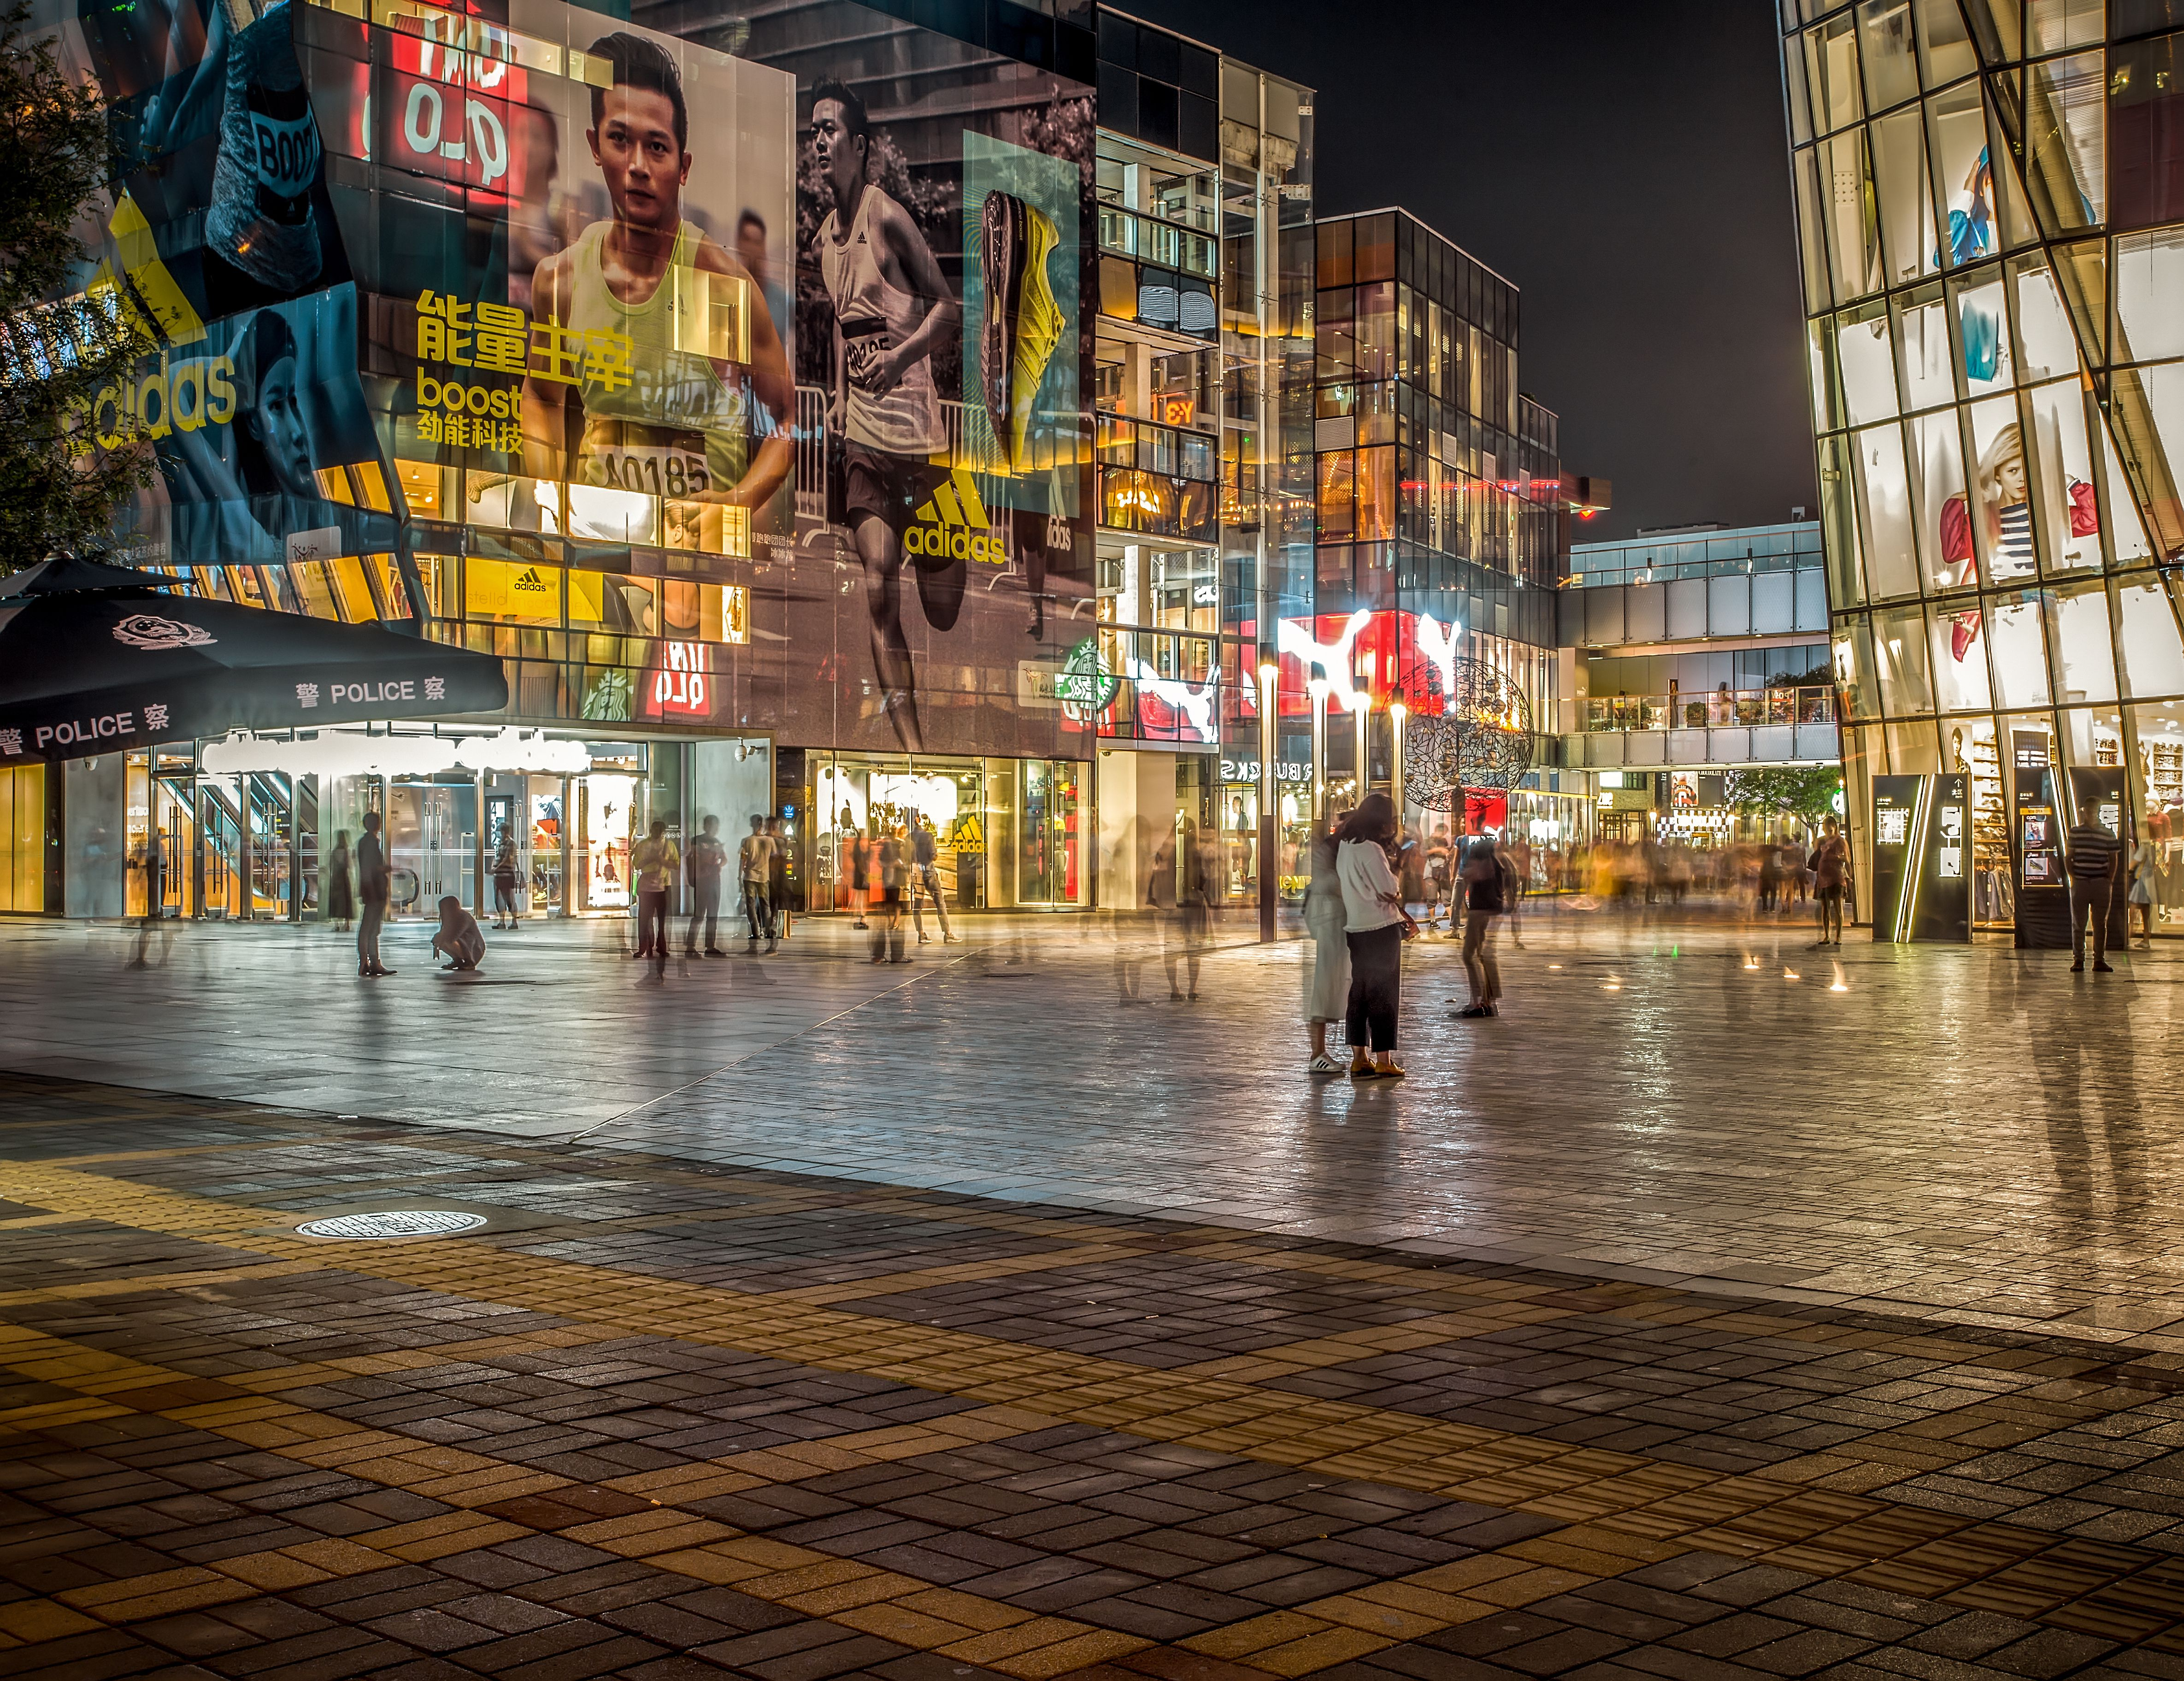 Glowing shops at night in the Sanlitun district of Beijing